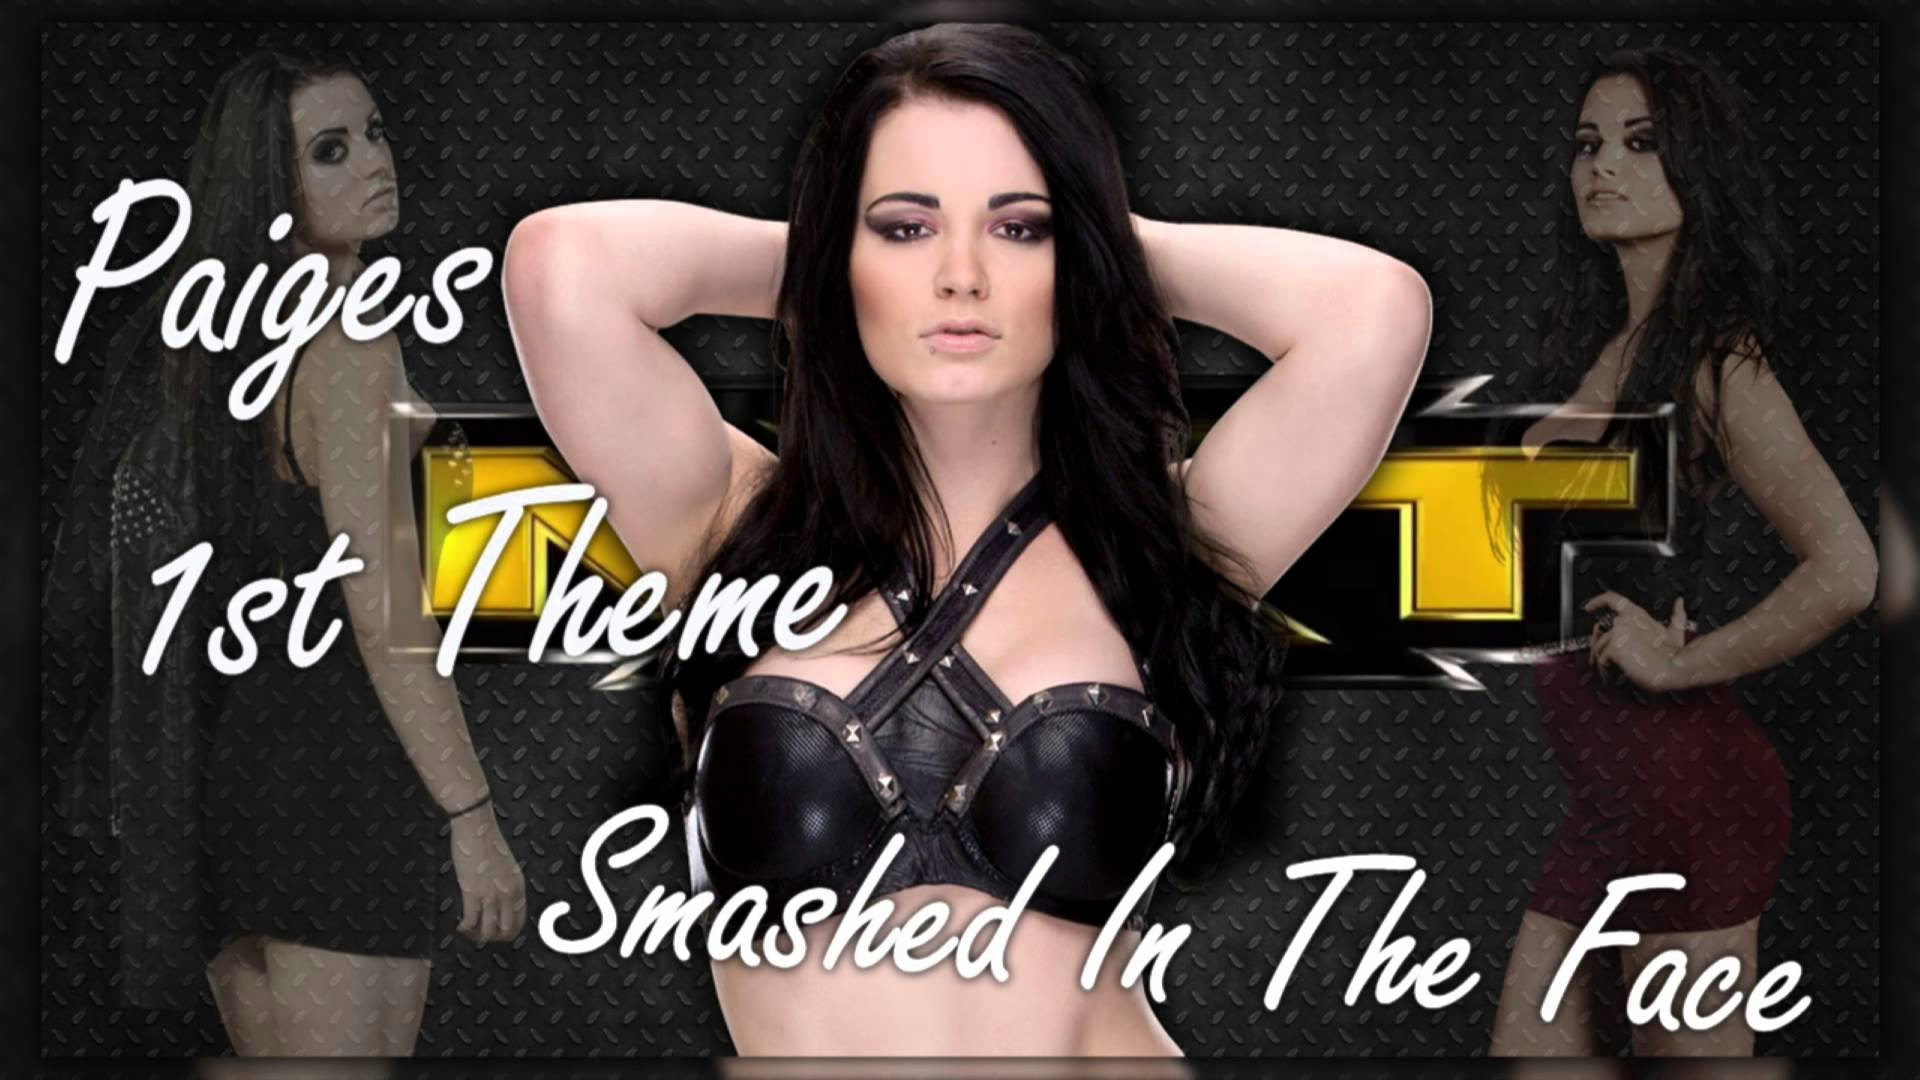 WWE NXT Divas : Paige 1st Theme – Smashed In The Face + Download – YouTube